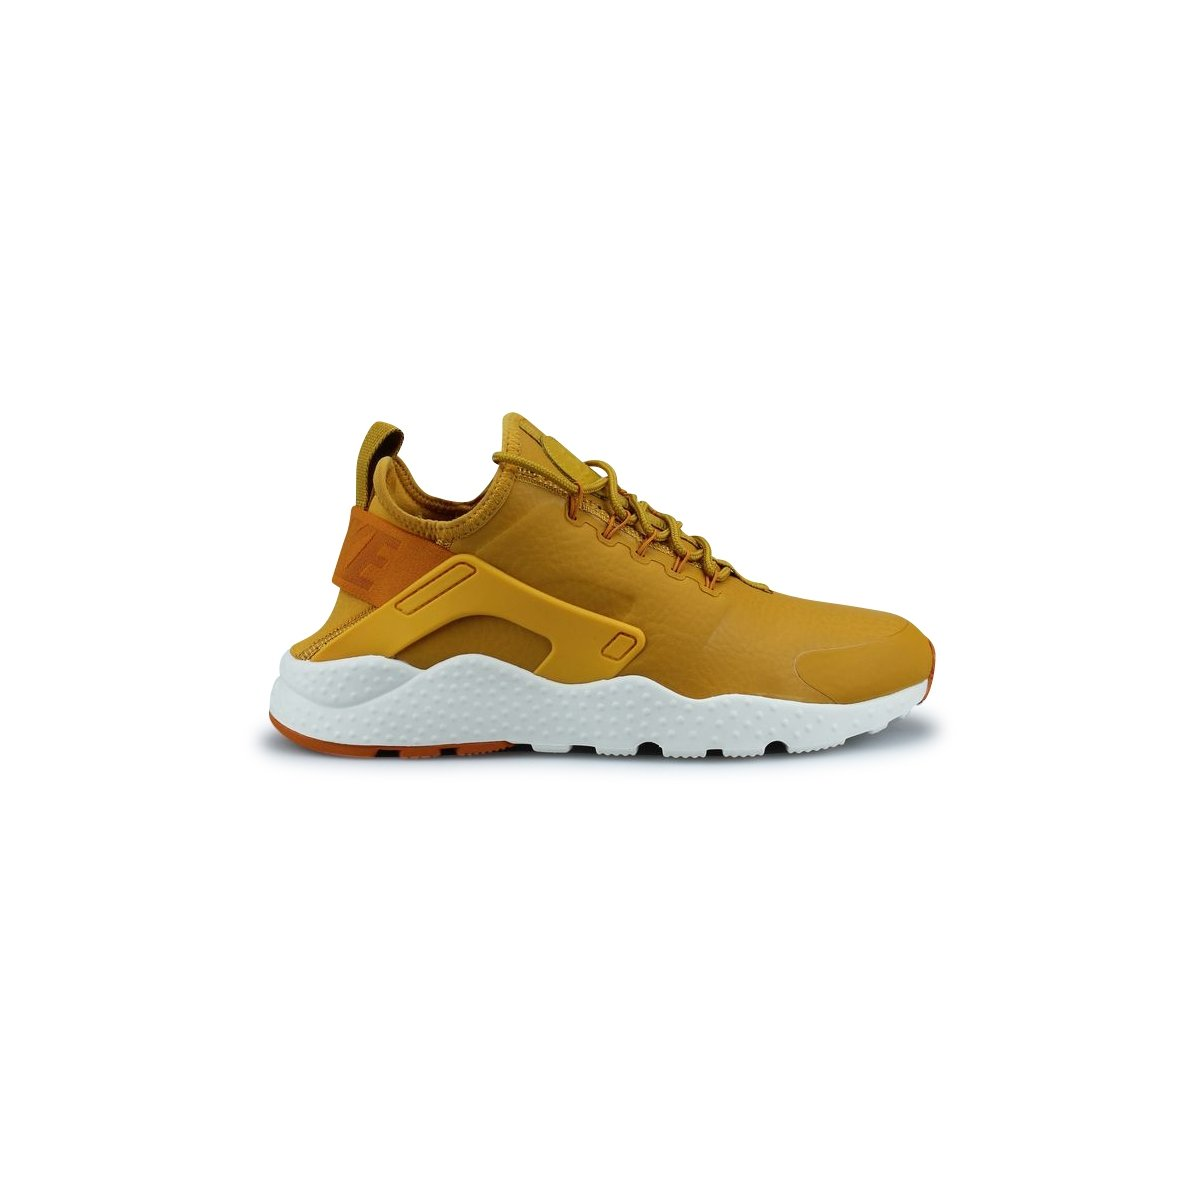 Galleon - Nike Womens Huarache Run Ultra PRM Running Trainers 859511  Sneakers Shoes (US 6.5 e1d2db48c